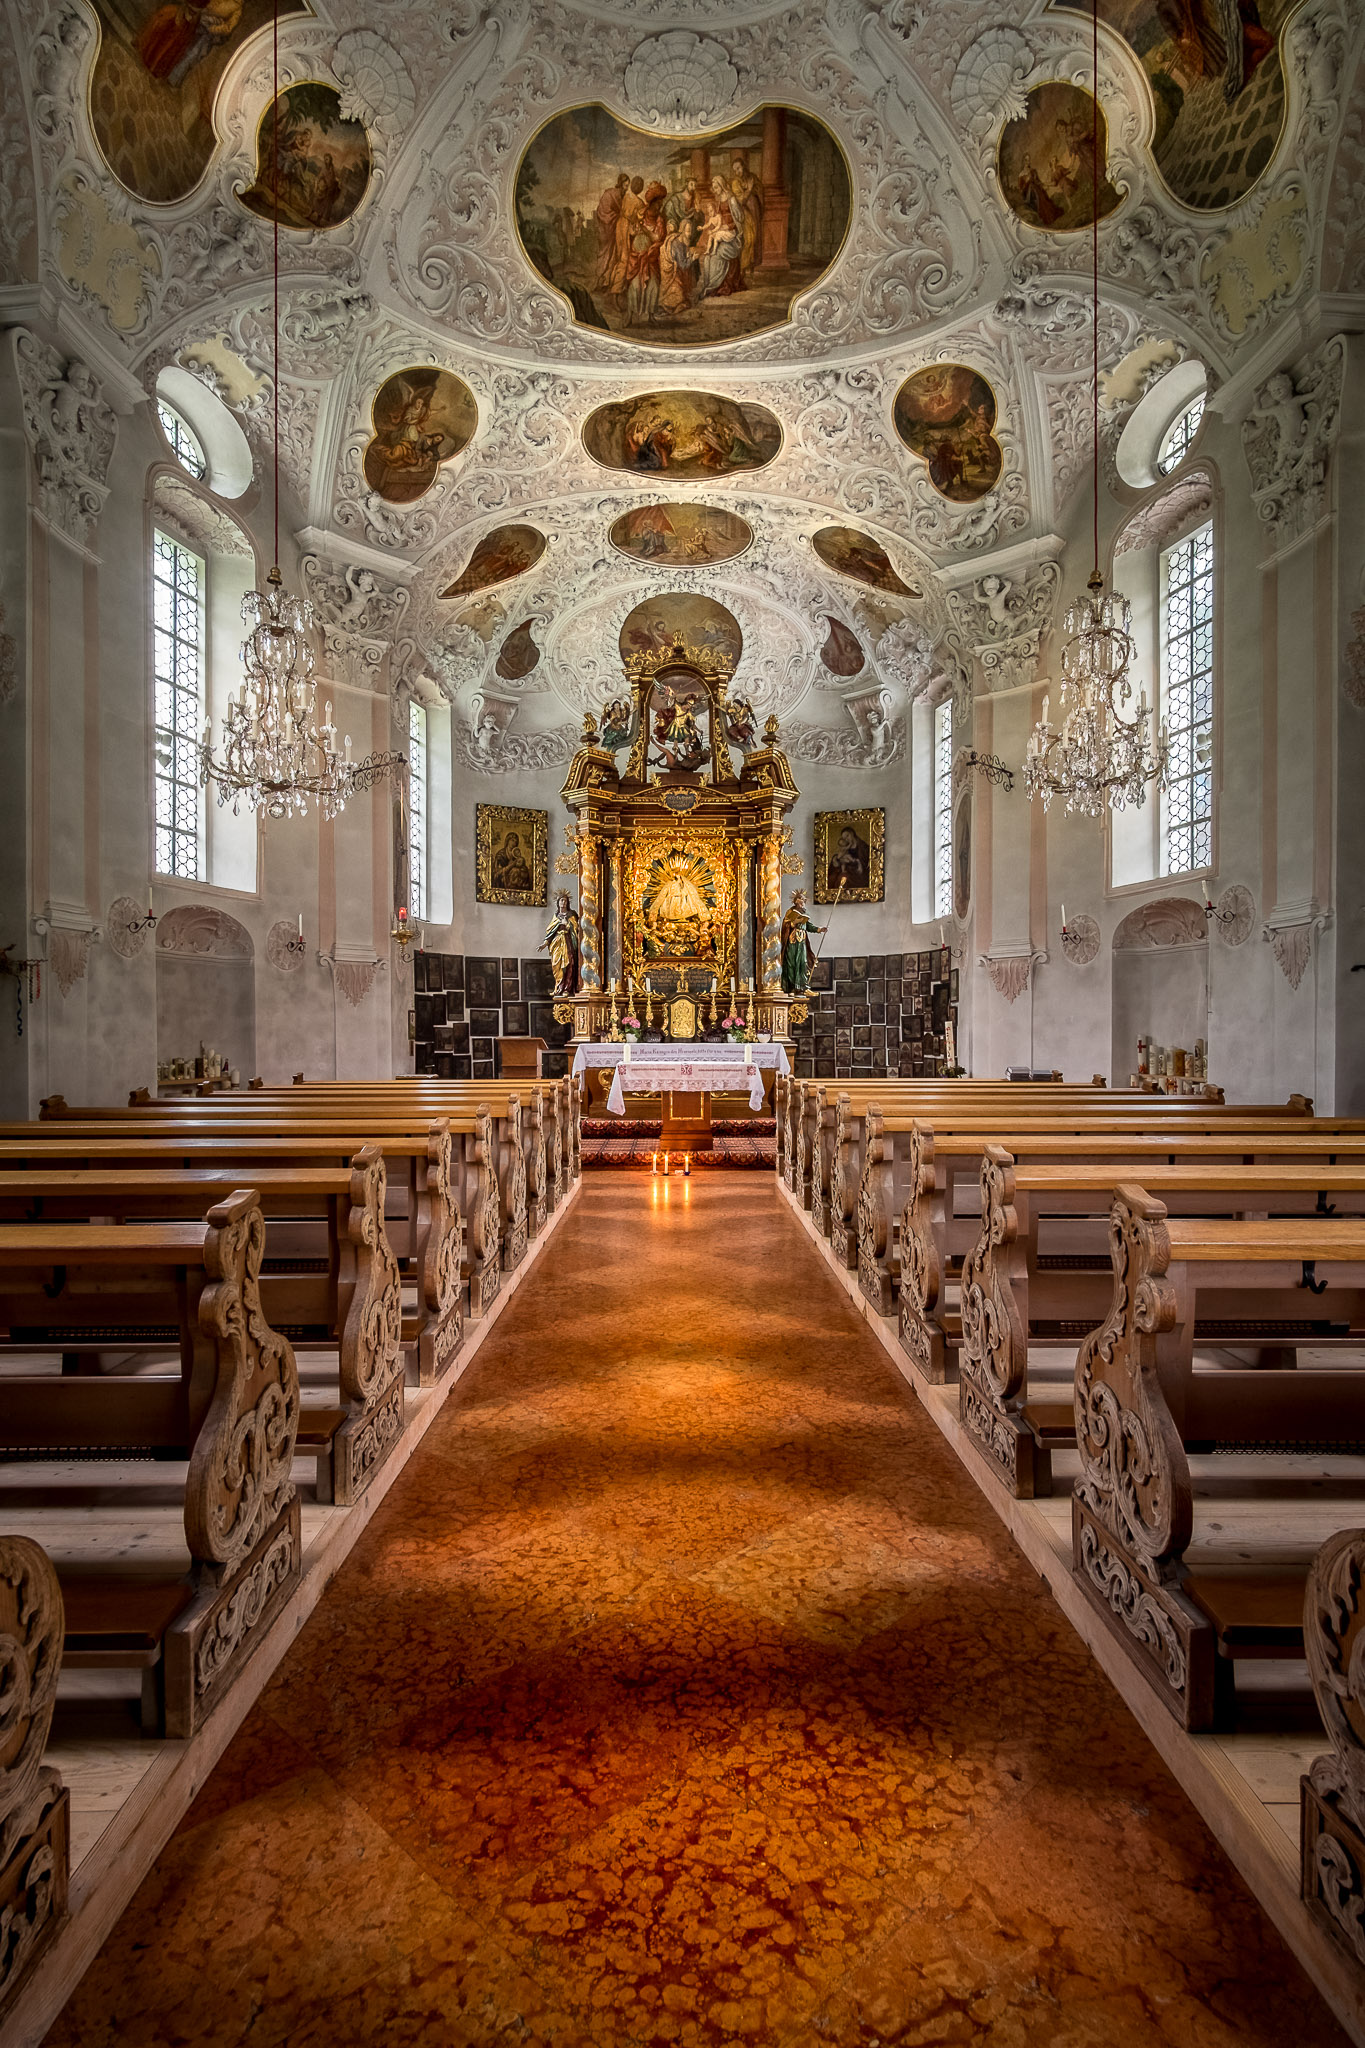 Pilgrimage Church of Maria Gern